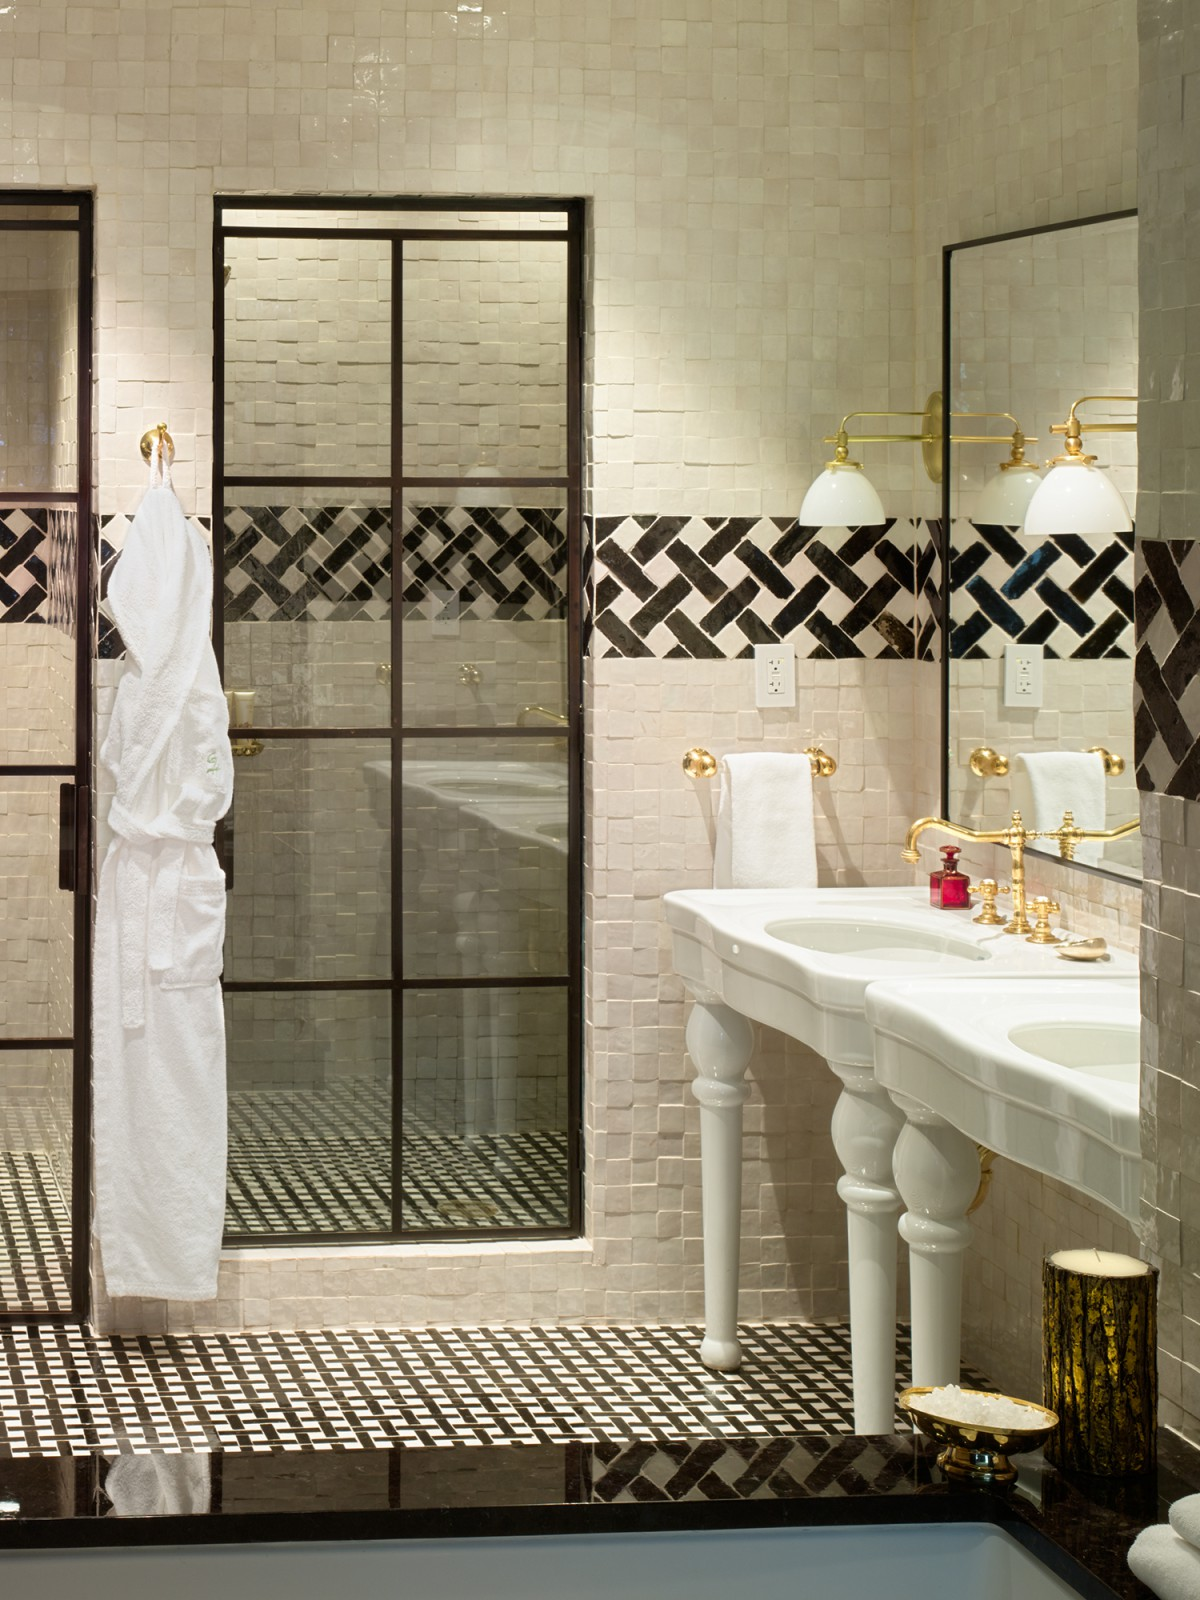 Detail of double sinks and showers in the N. Moore Penthouse at the Greenwich Hotel